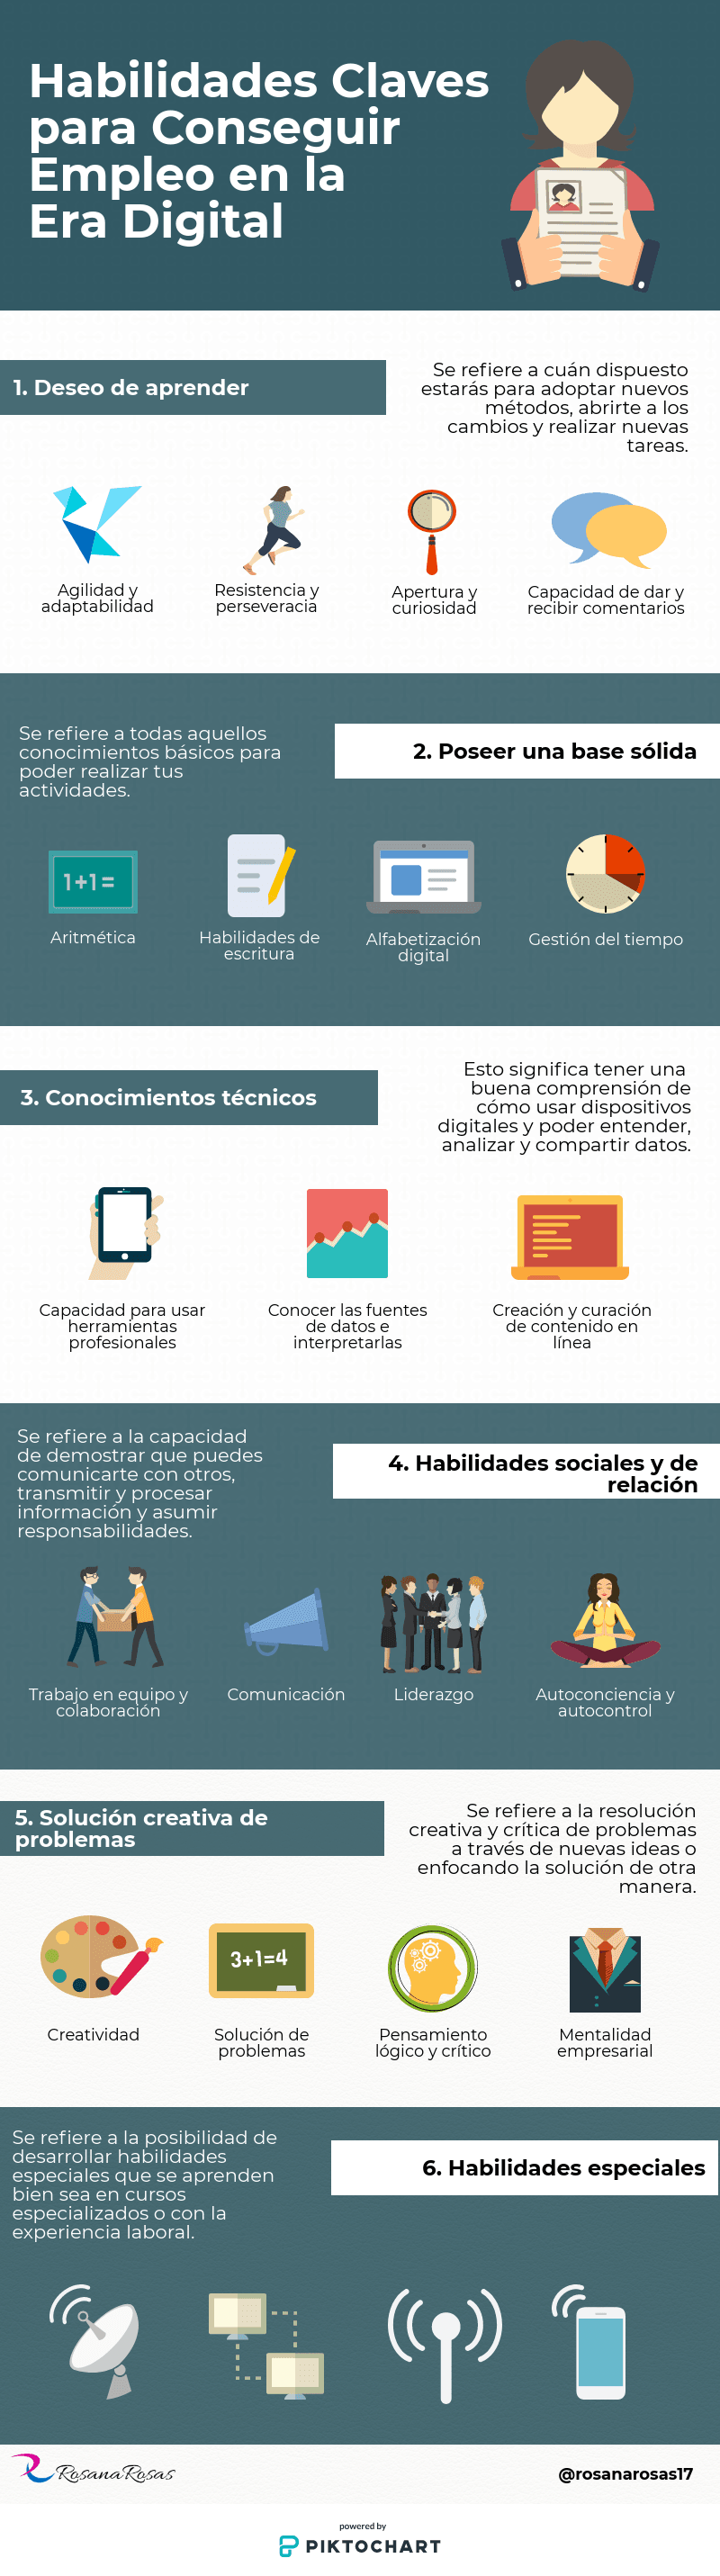 infografia-carrera-era-digital